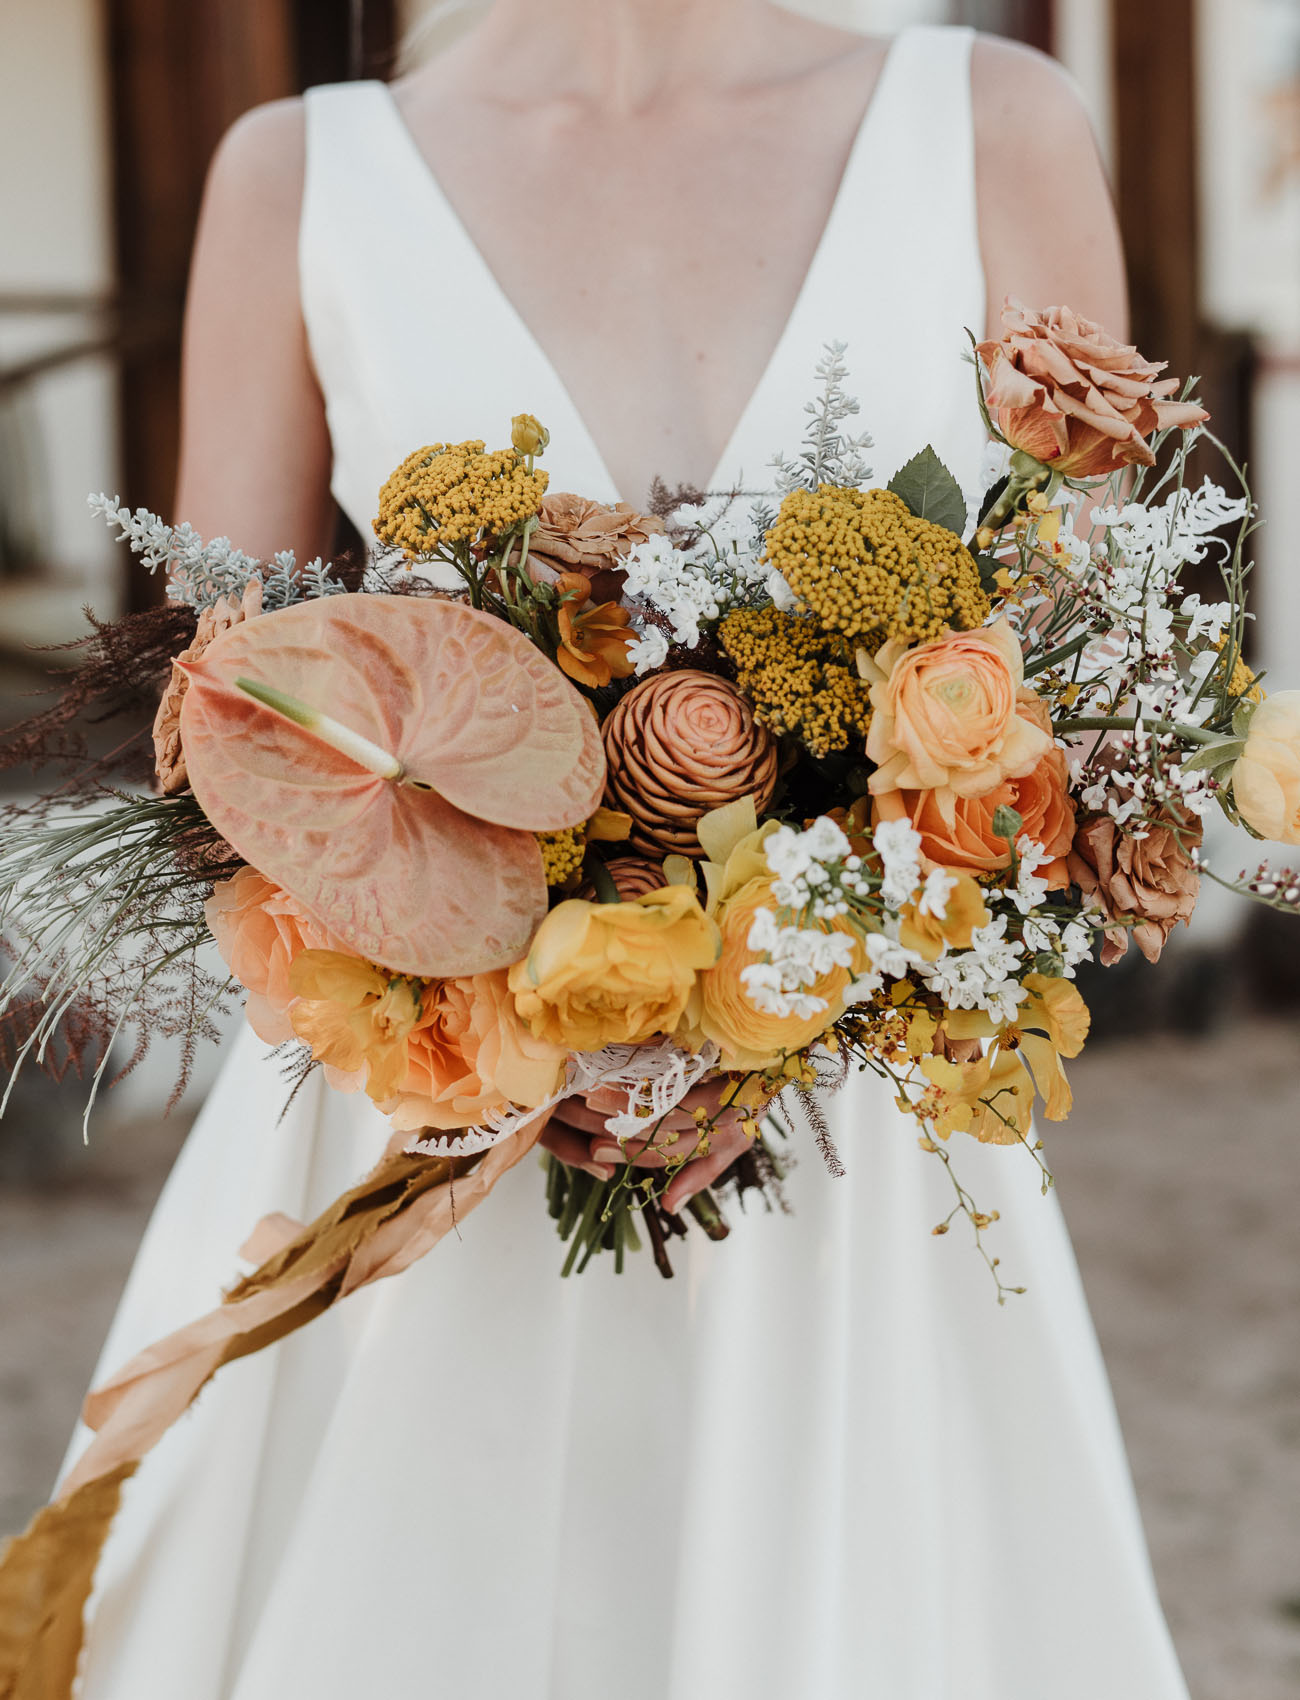 The fantastic wedding bouquet was done in rust, mustard and yellow shades and with pale greenery and herbs